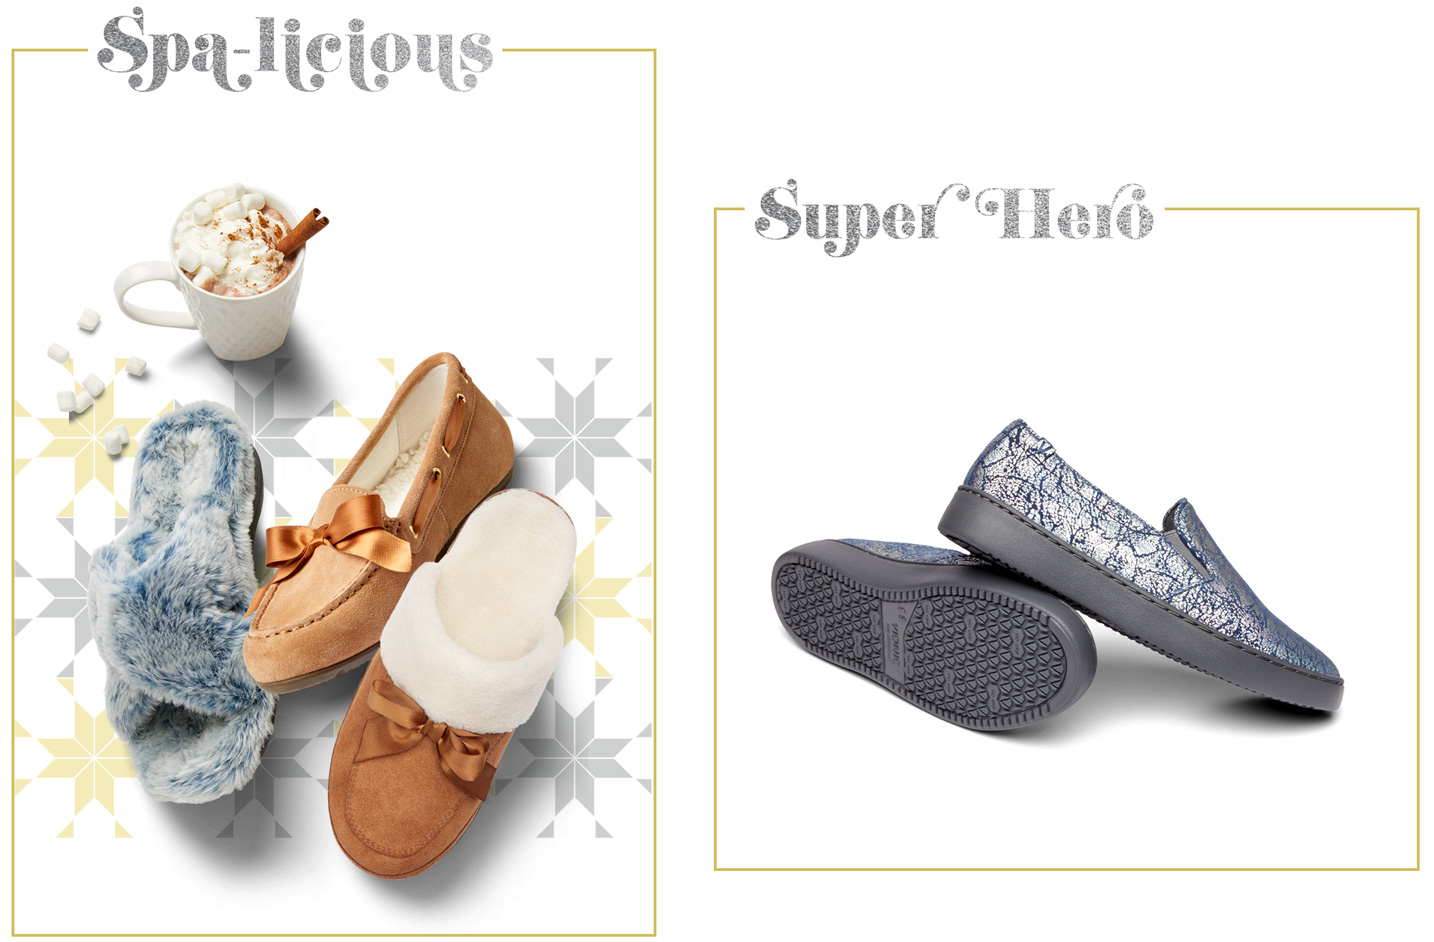 Spa-licious Wild Child women's shoes and slippers